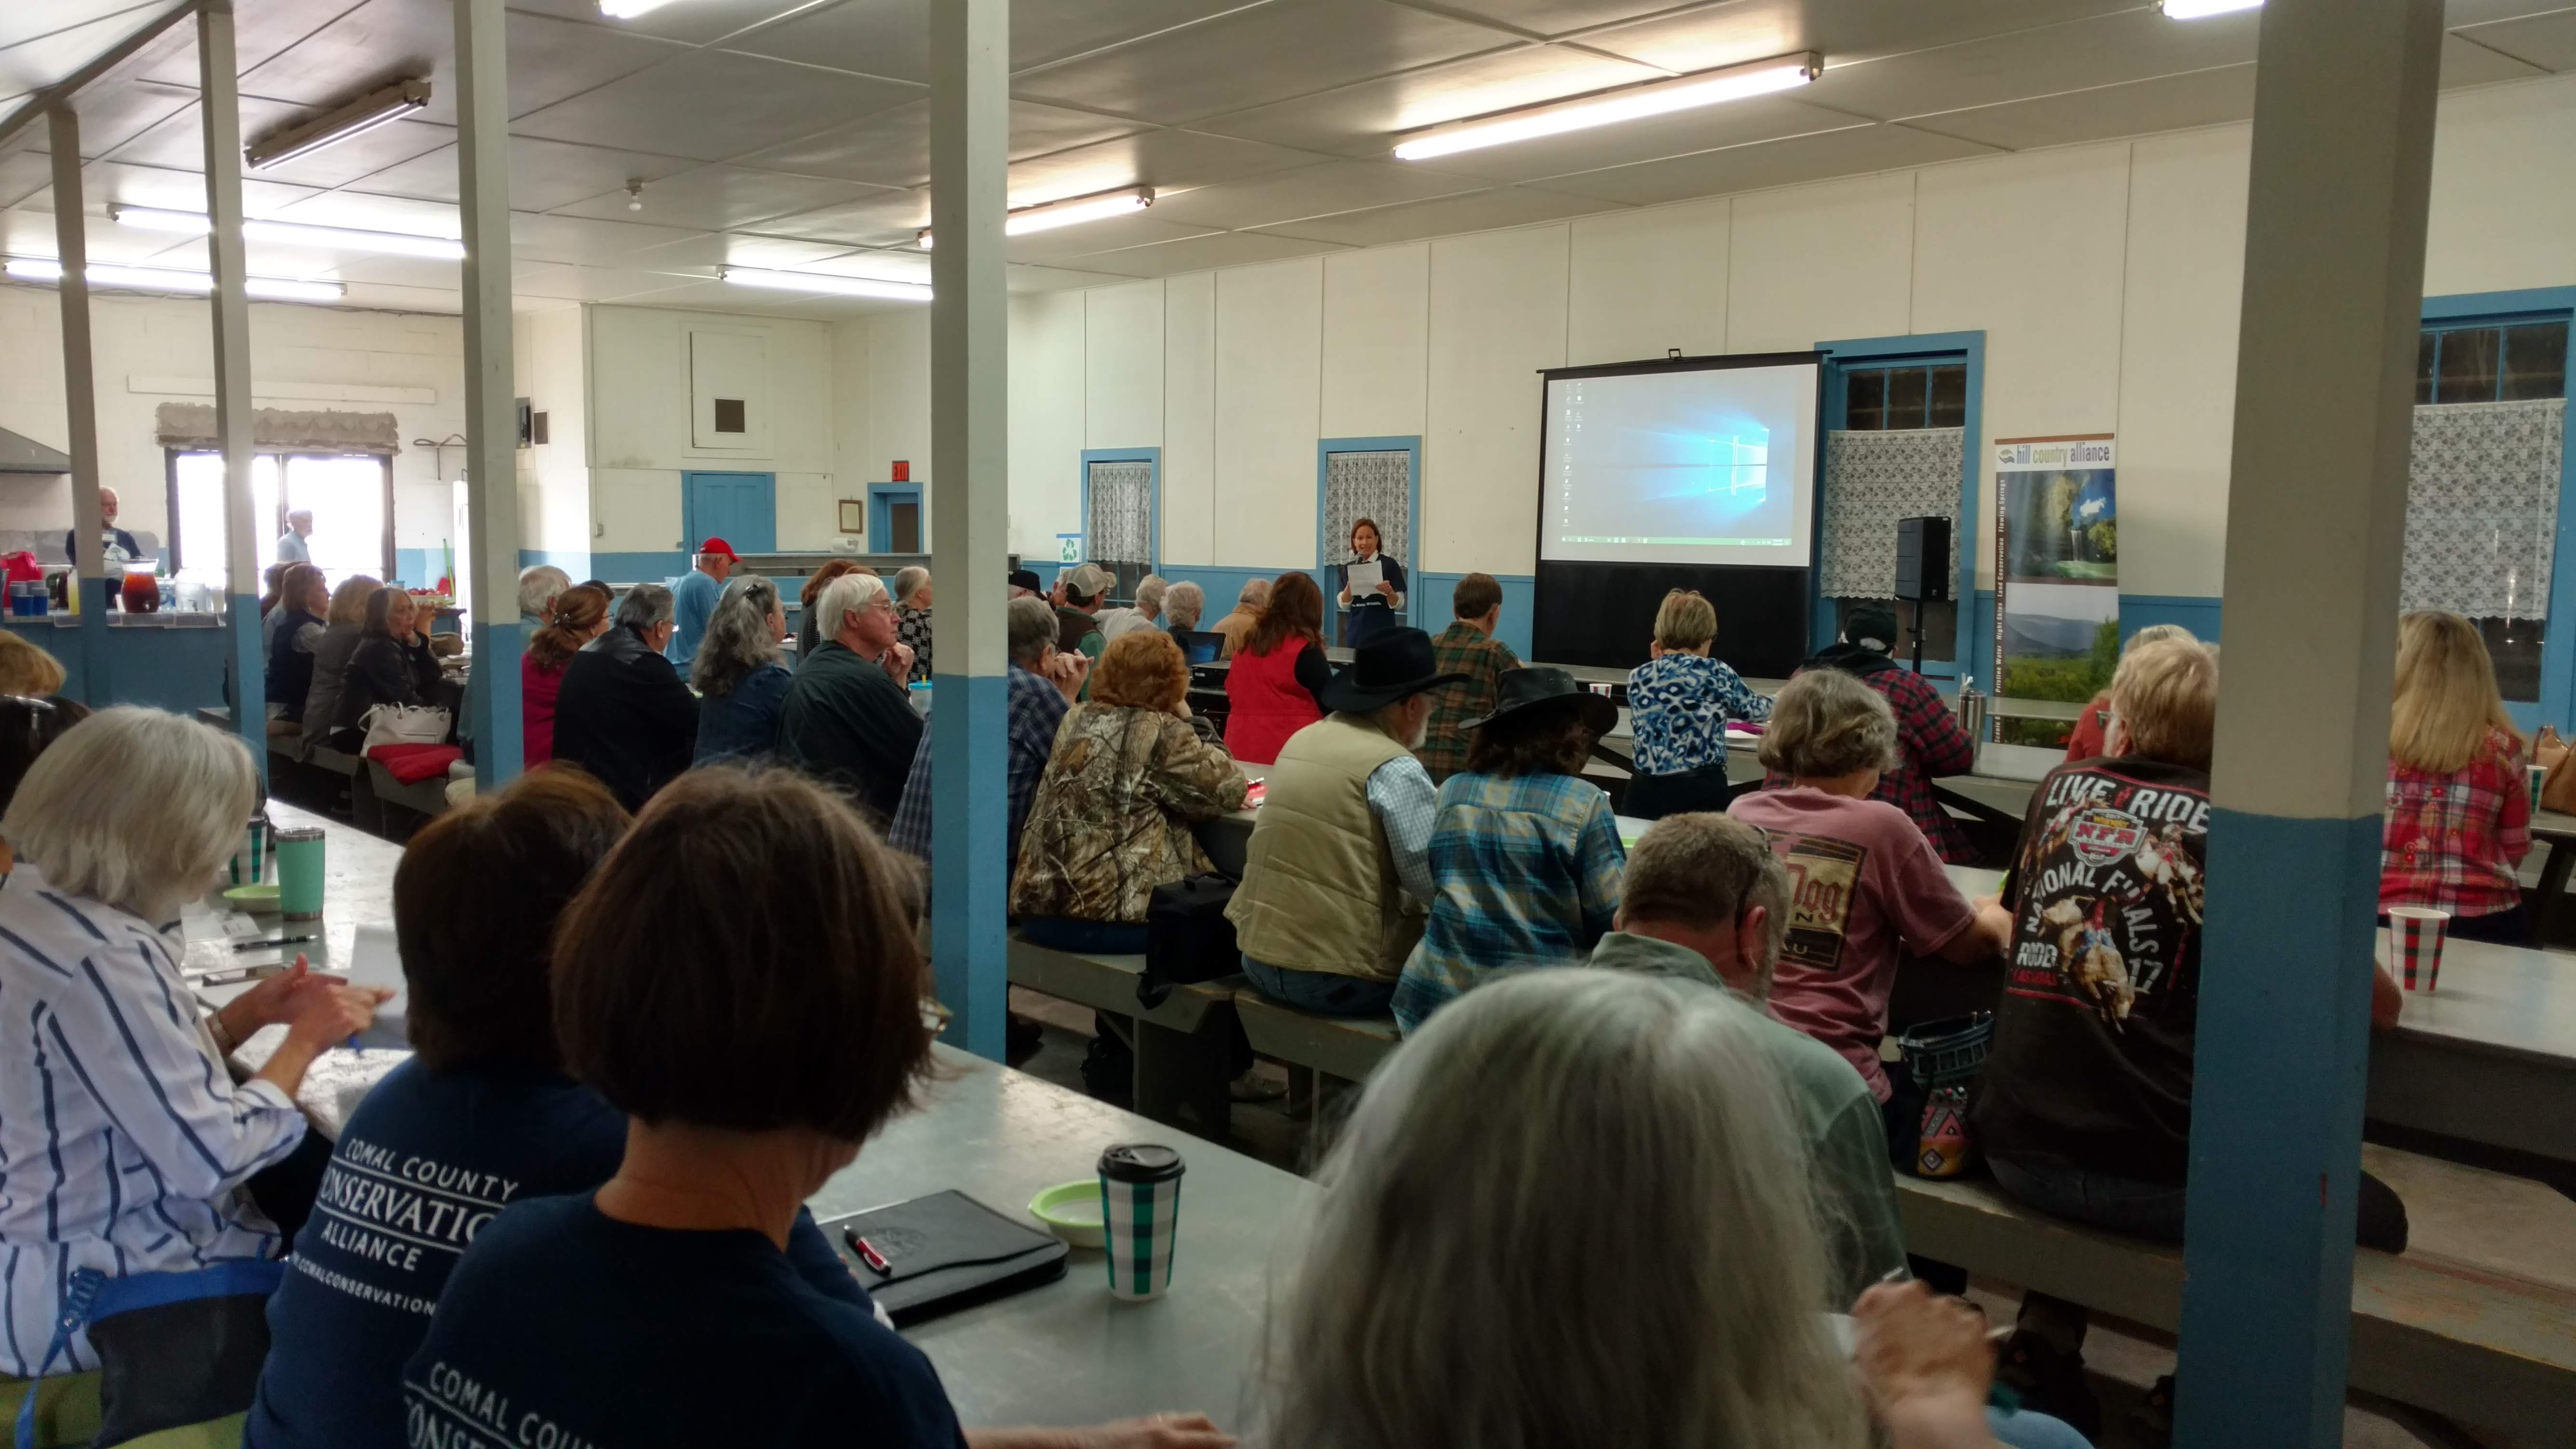 Landowners attend workshop on financial, conservation tools: About 90 hear CCCA, Hill Country Alliance speakers